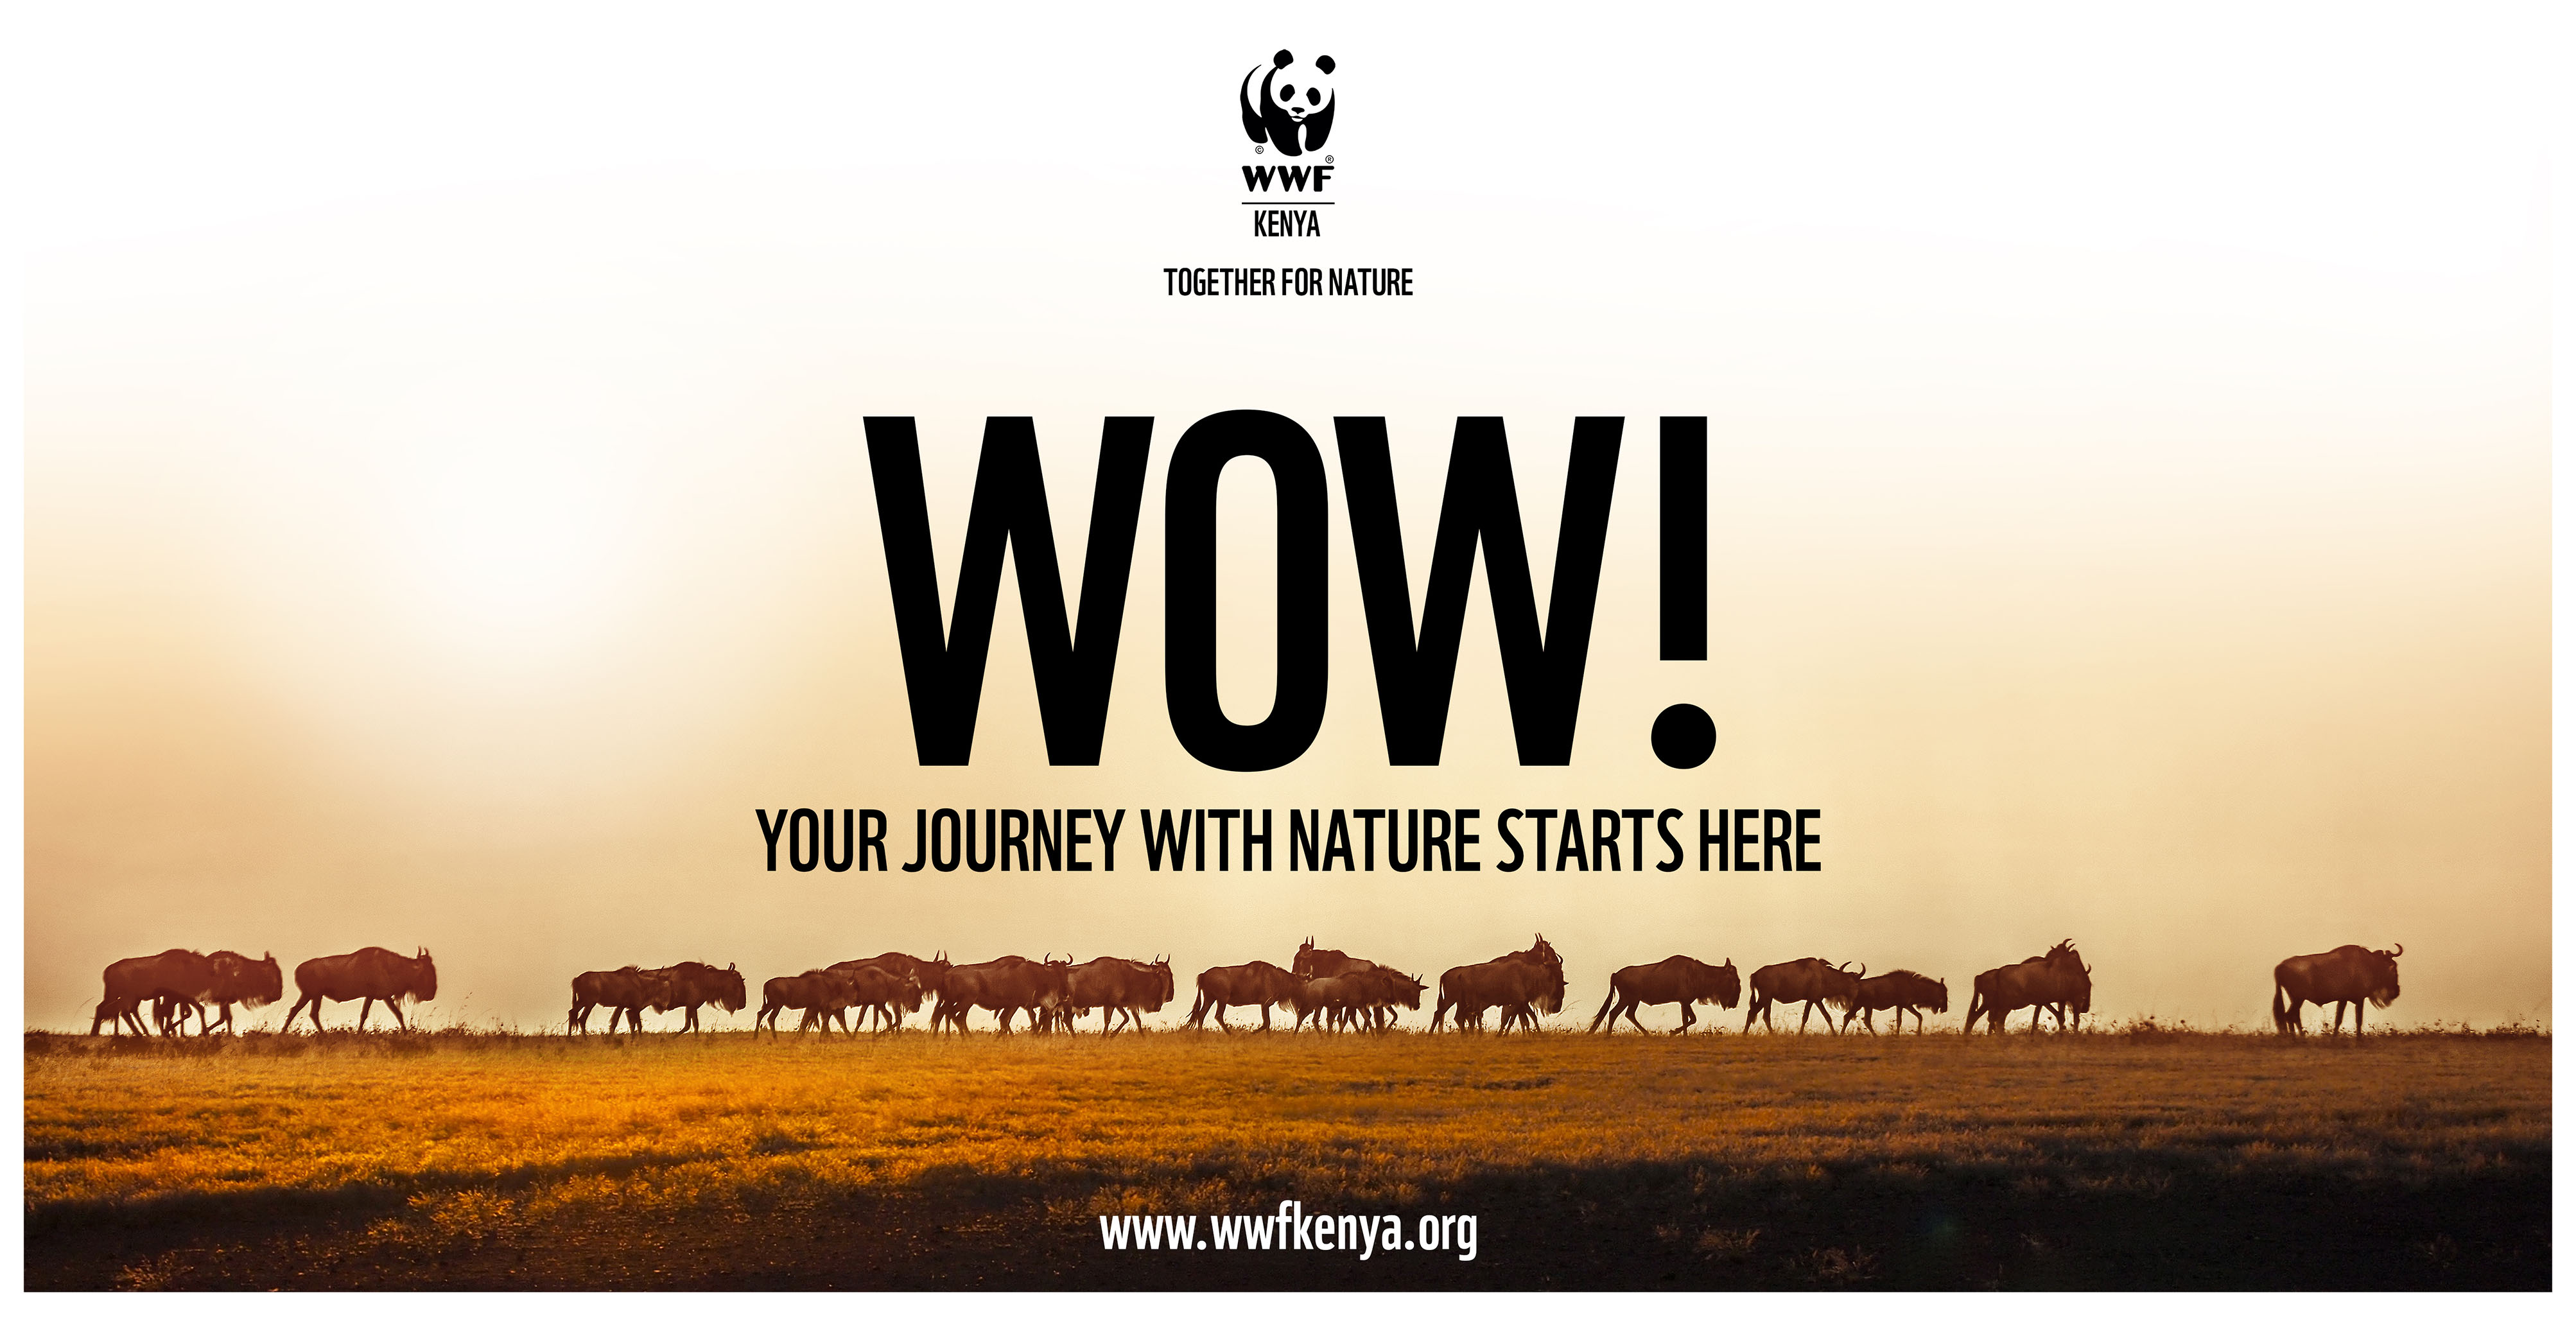 WWF billboard for its Kenya launch